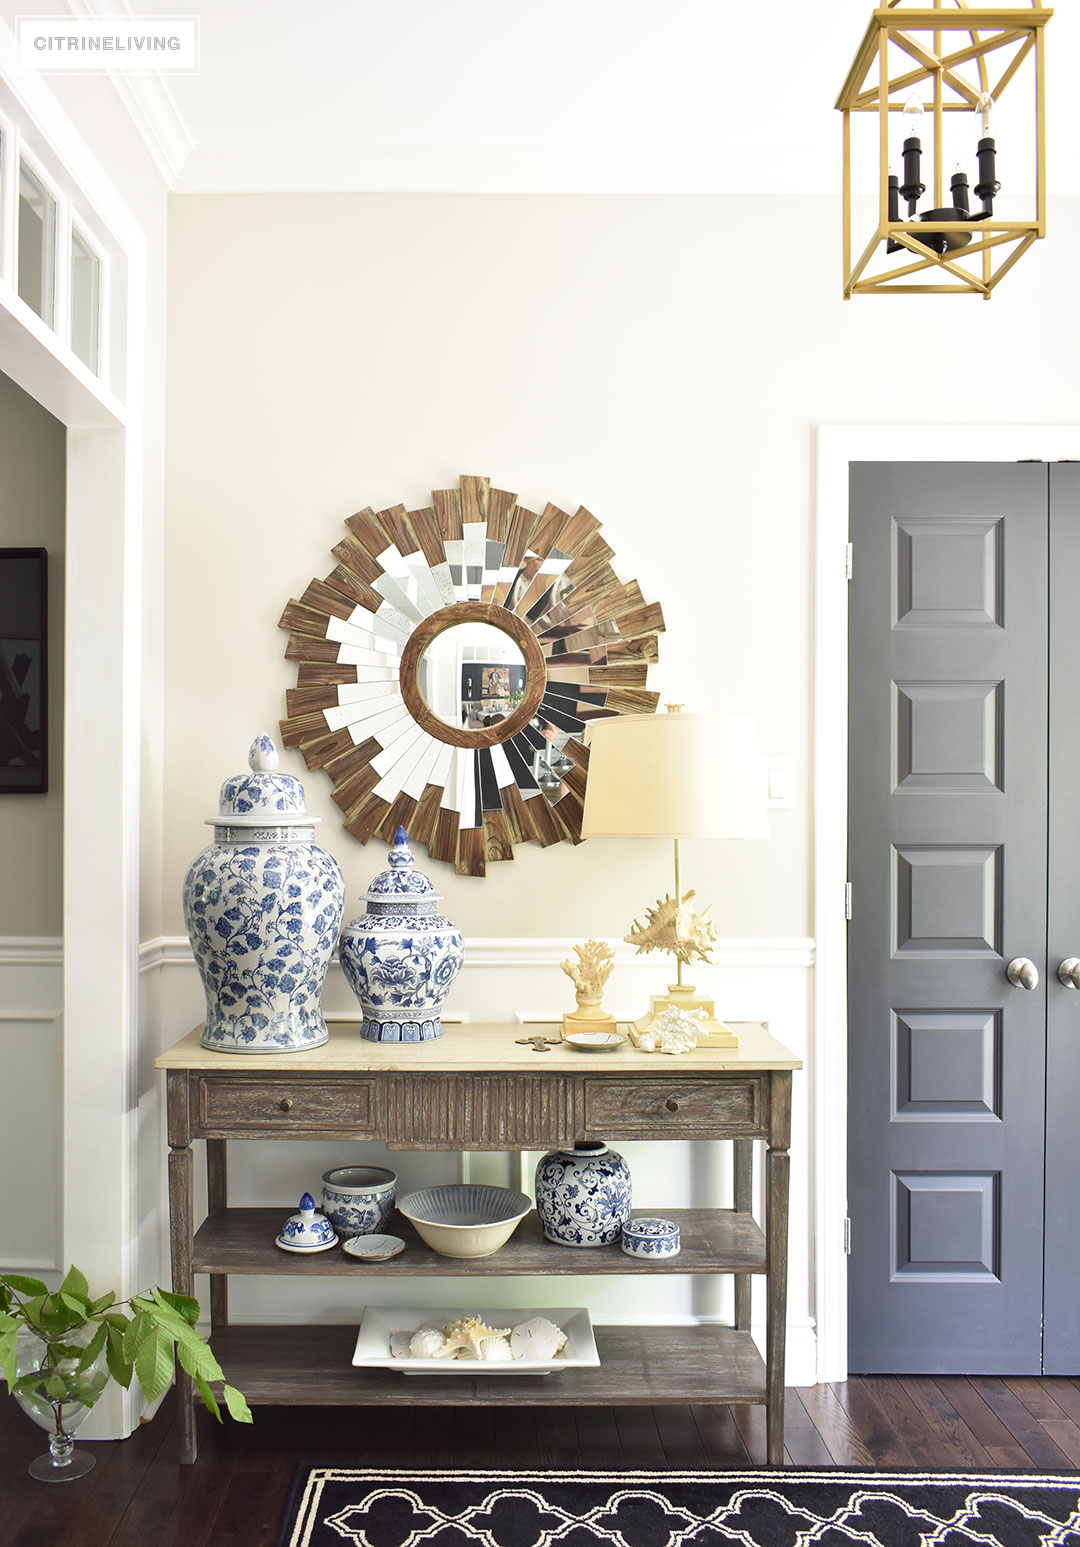 Large entryway with transom details lead to an open concept floor plan. Summer decorating with blue and white accents and fresh greenery keep the look light. Brass lantern style lighting and starburst mirror, a black and white graphic patterned rug help bring a sophisticated look.